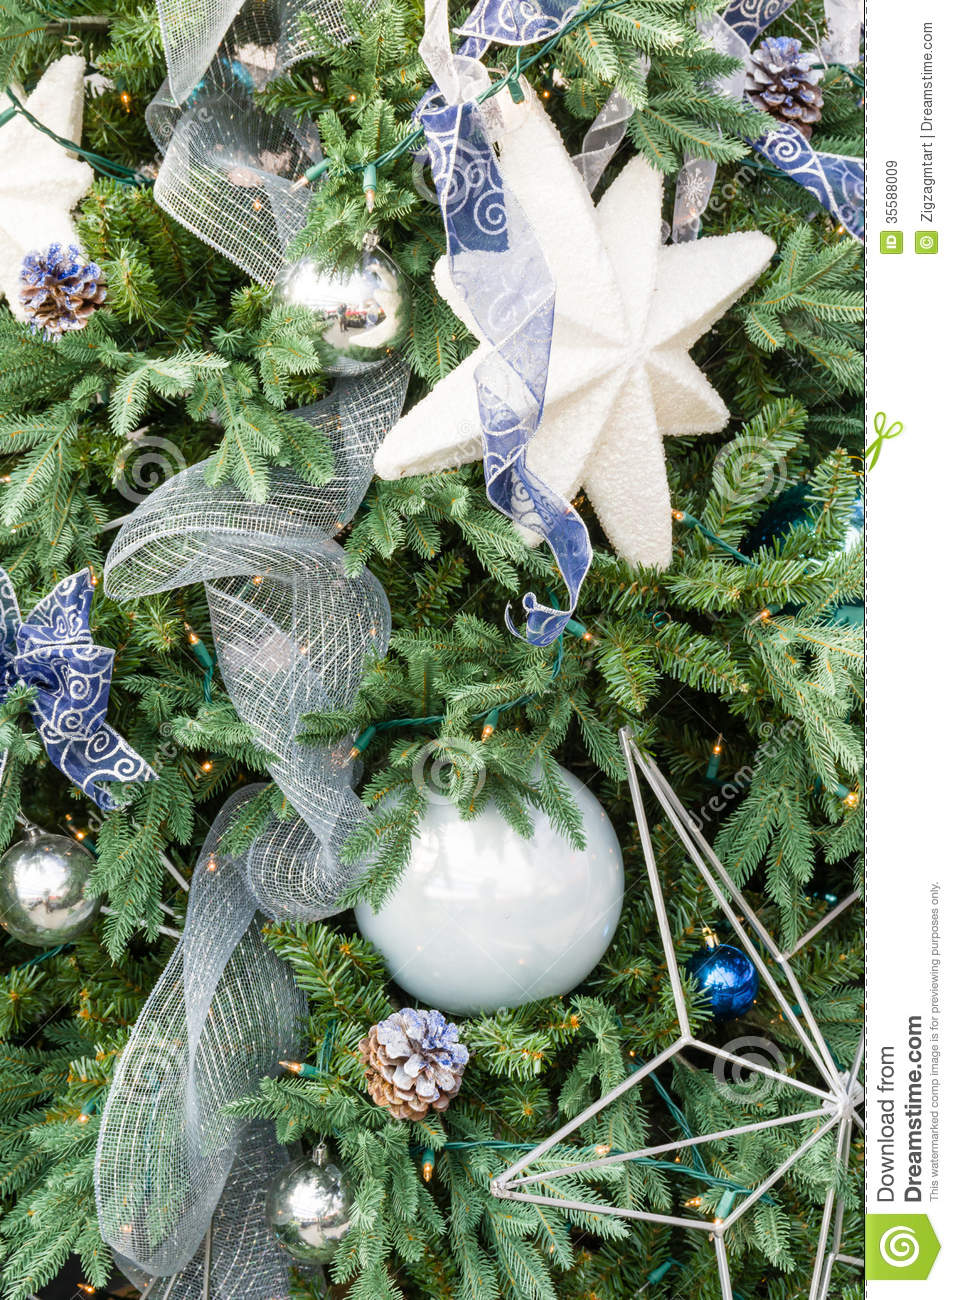 Decorated Christmas Tree Images : Christmas tree decorated with blue and white royalty free